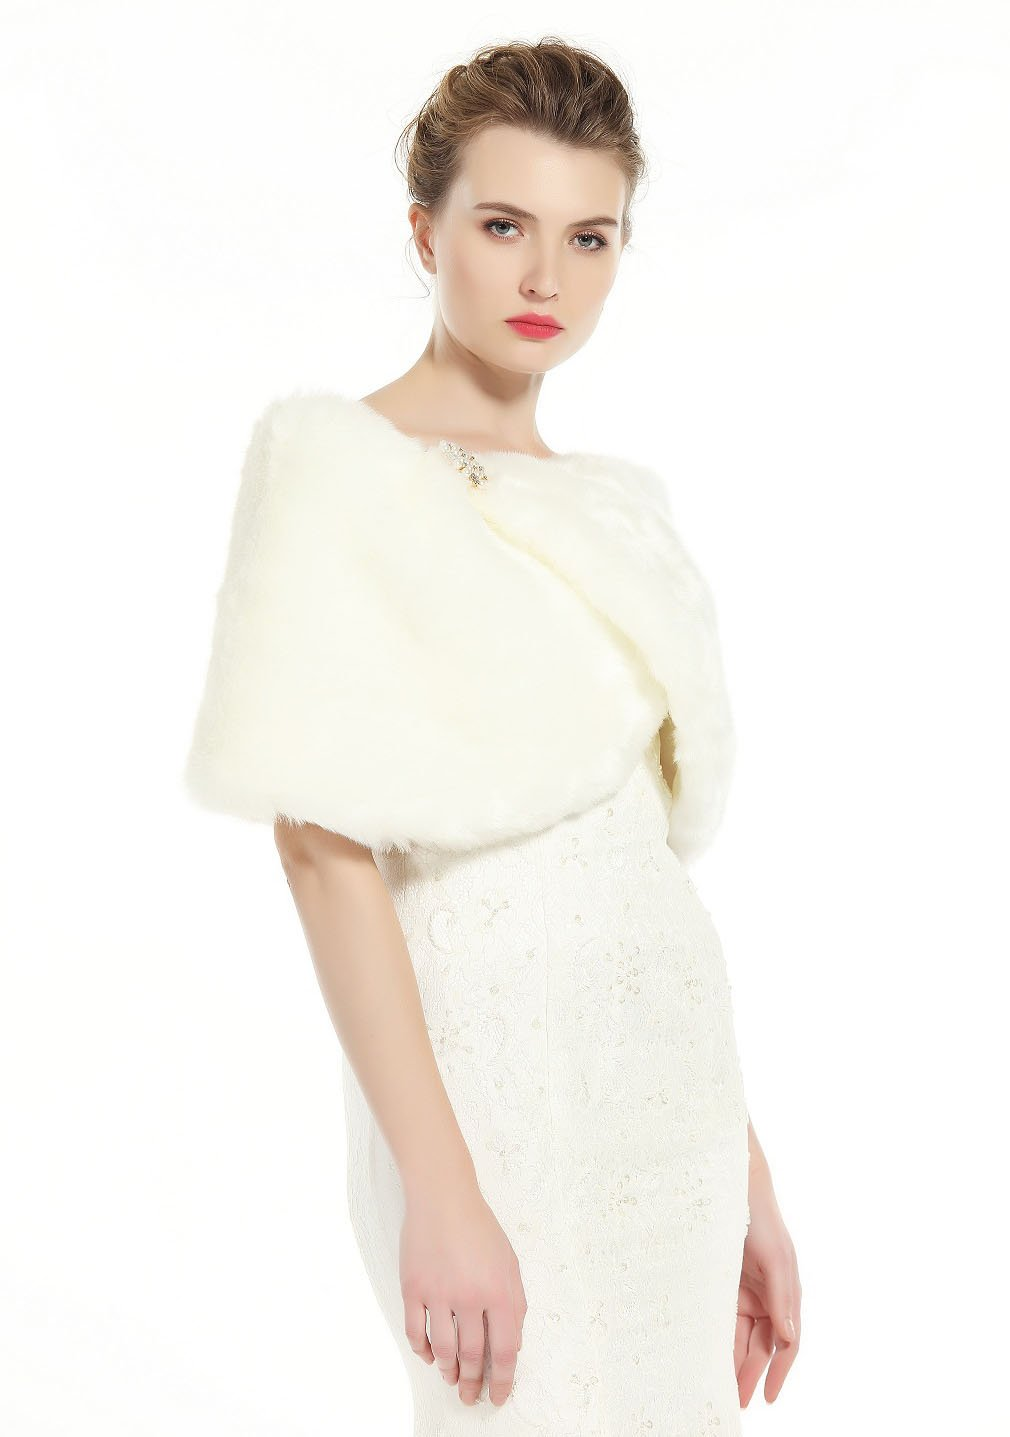 Faux Fur Wrap Shawl Women's Shrug Bridal Stole for Winter Wedding Party Free Brooch Ivory by BEAUTELICATE (Image #4)